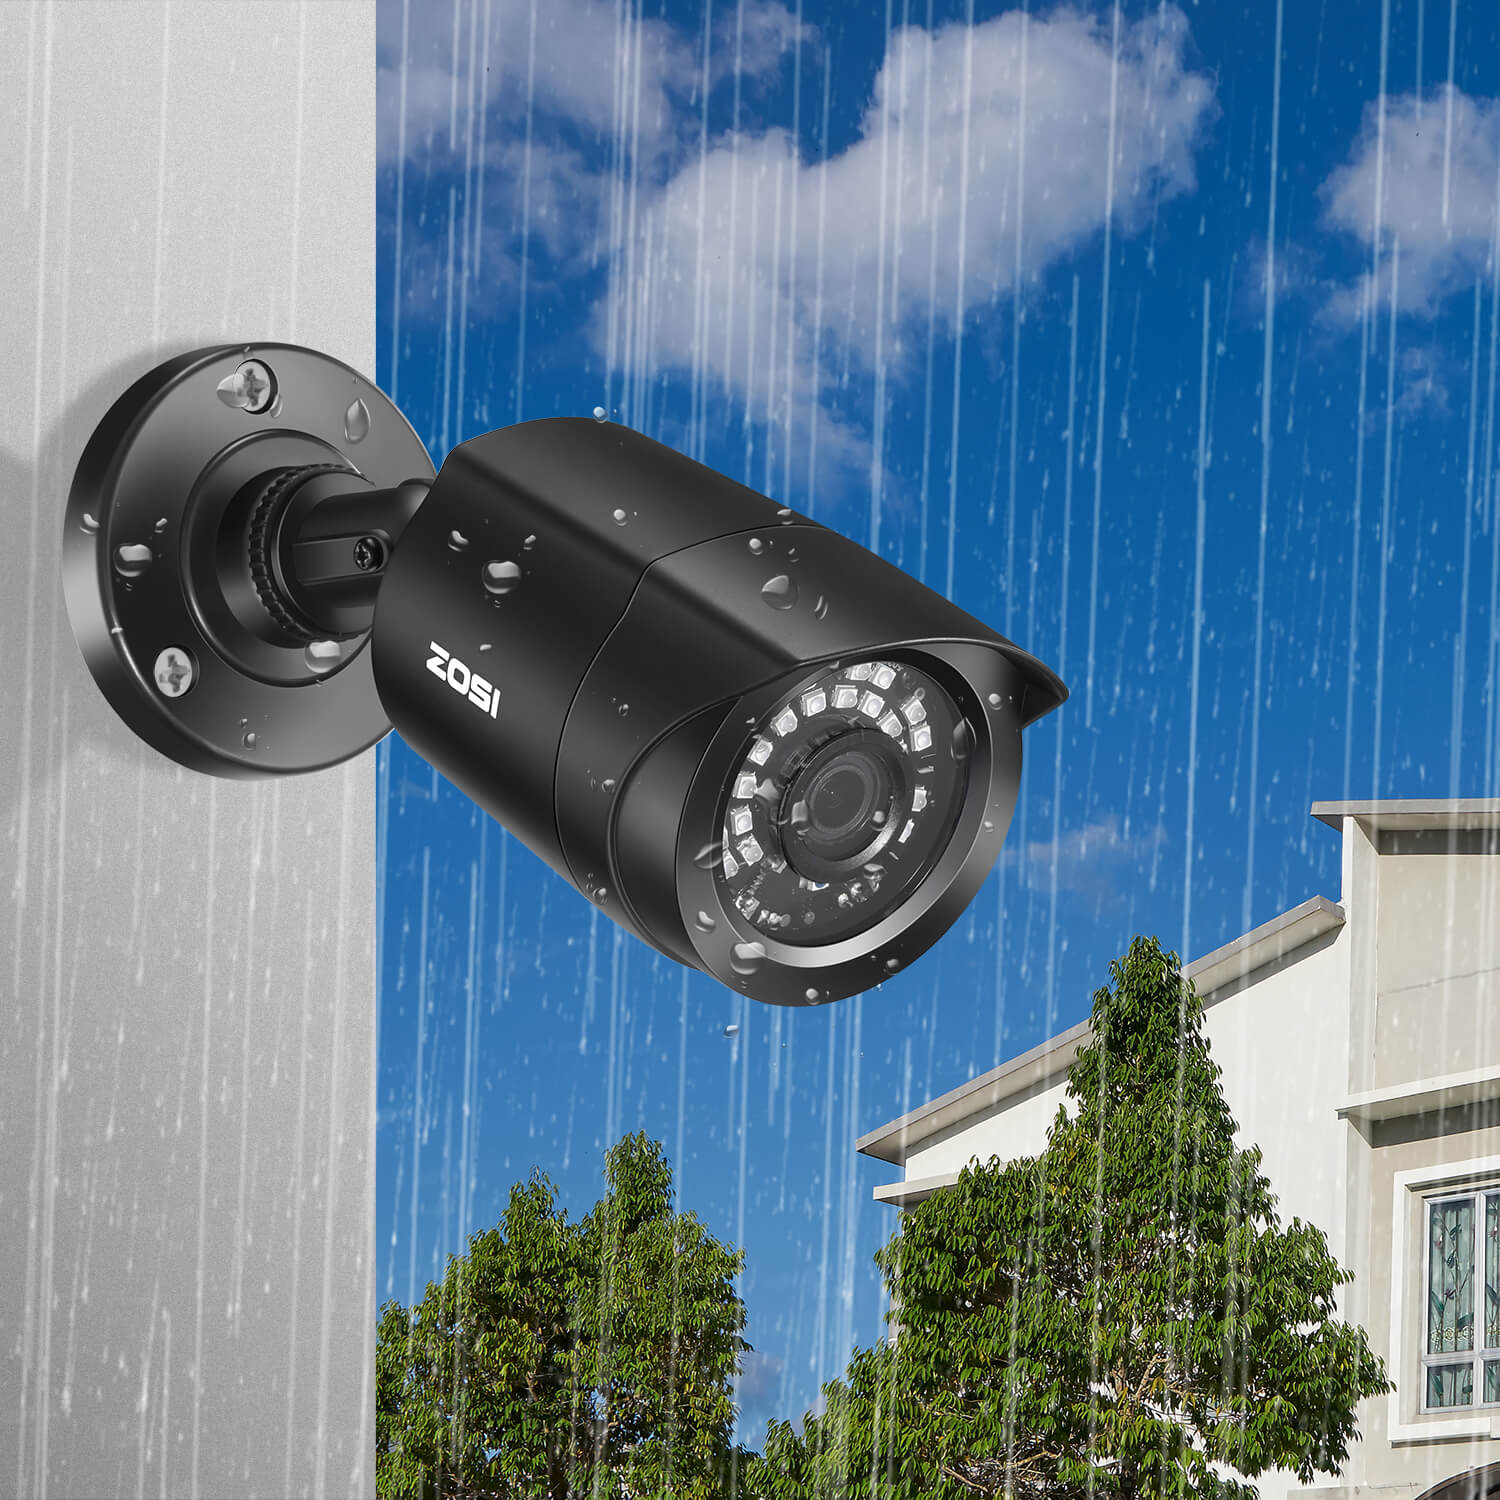 1080P Security Camera, IP66 Weatherproof, 80ft Infrared Night Vision, Compatible with TVI CVI AHD CVBS DVR